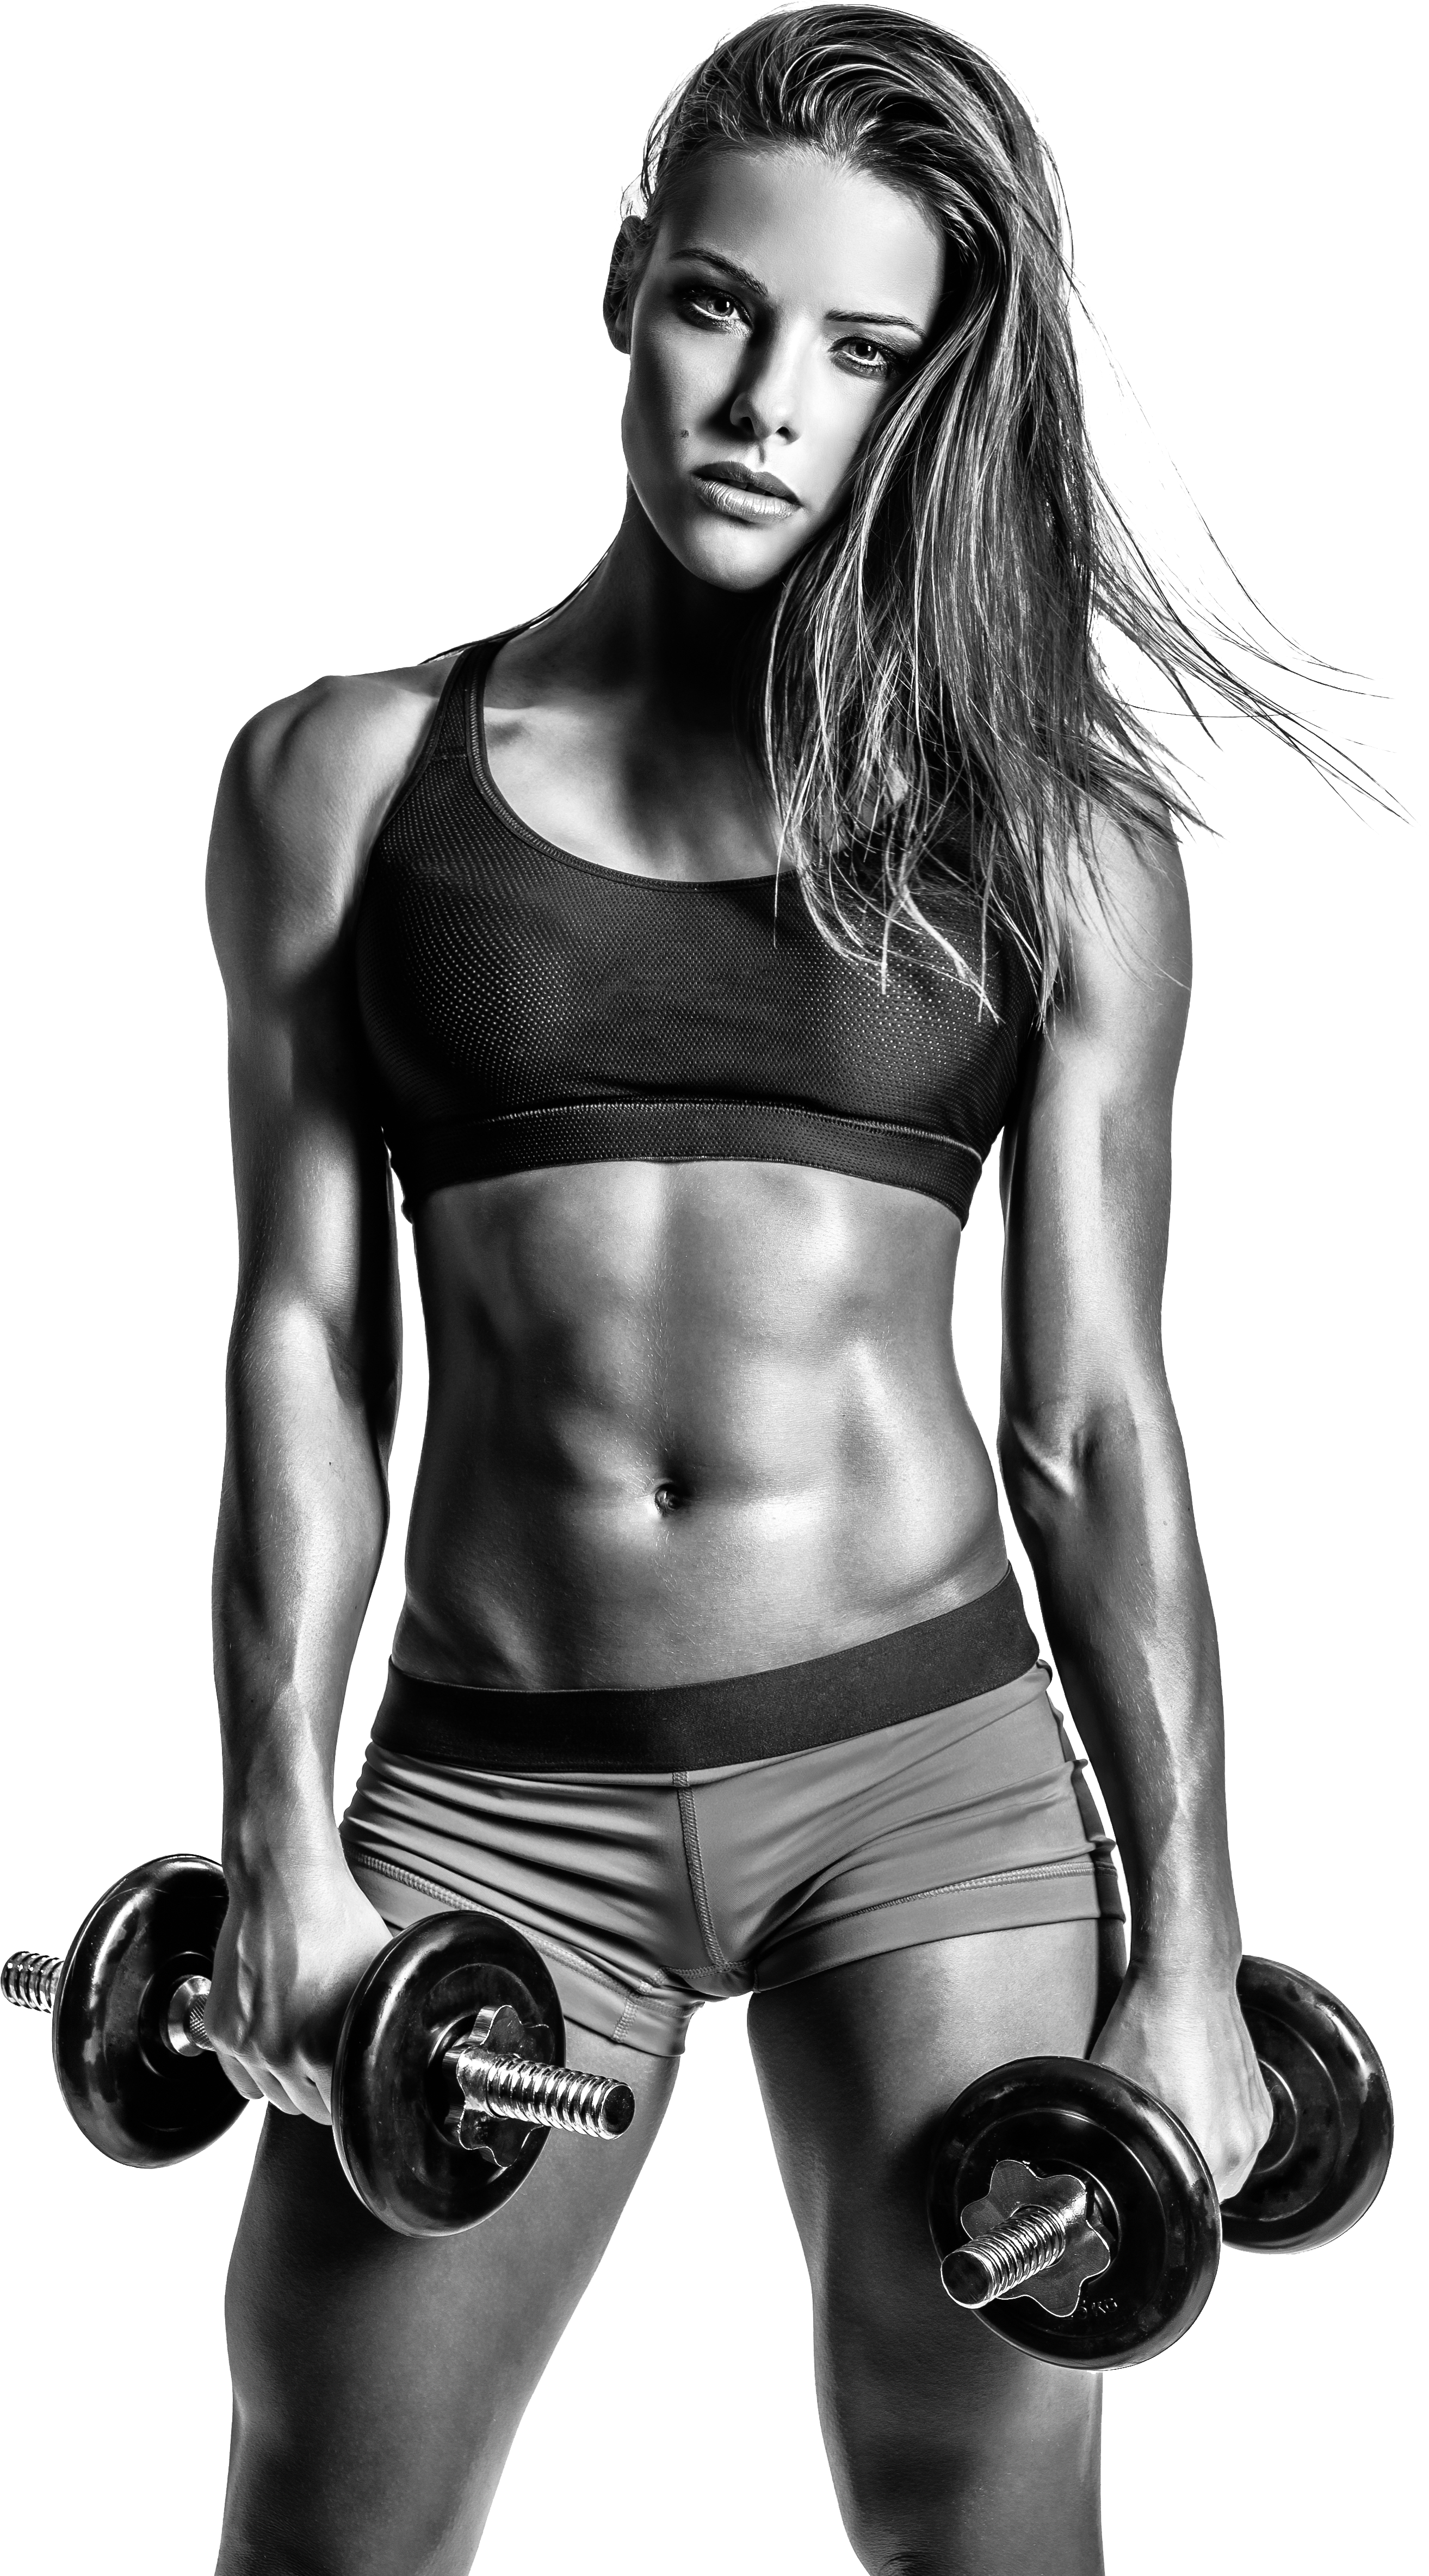 Fitness girl png. Sport images free download